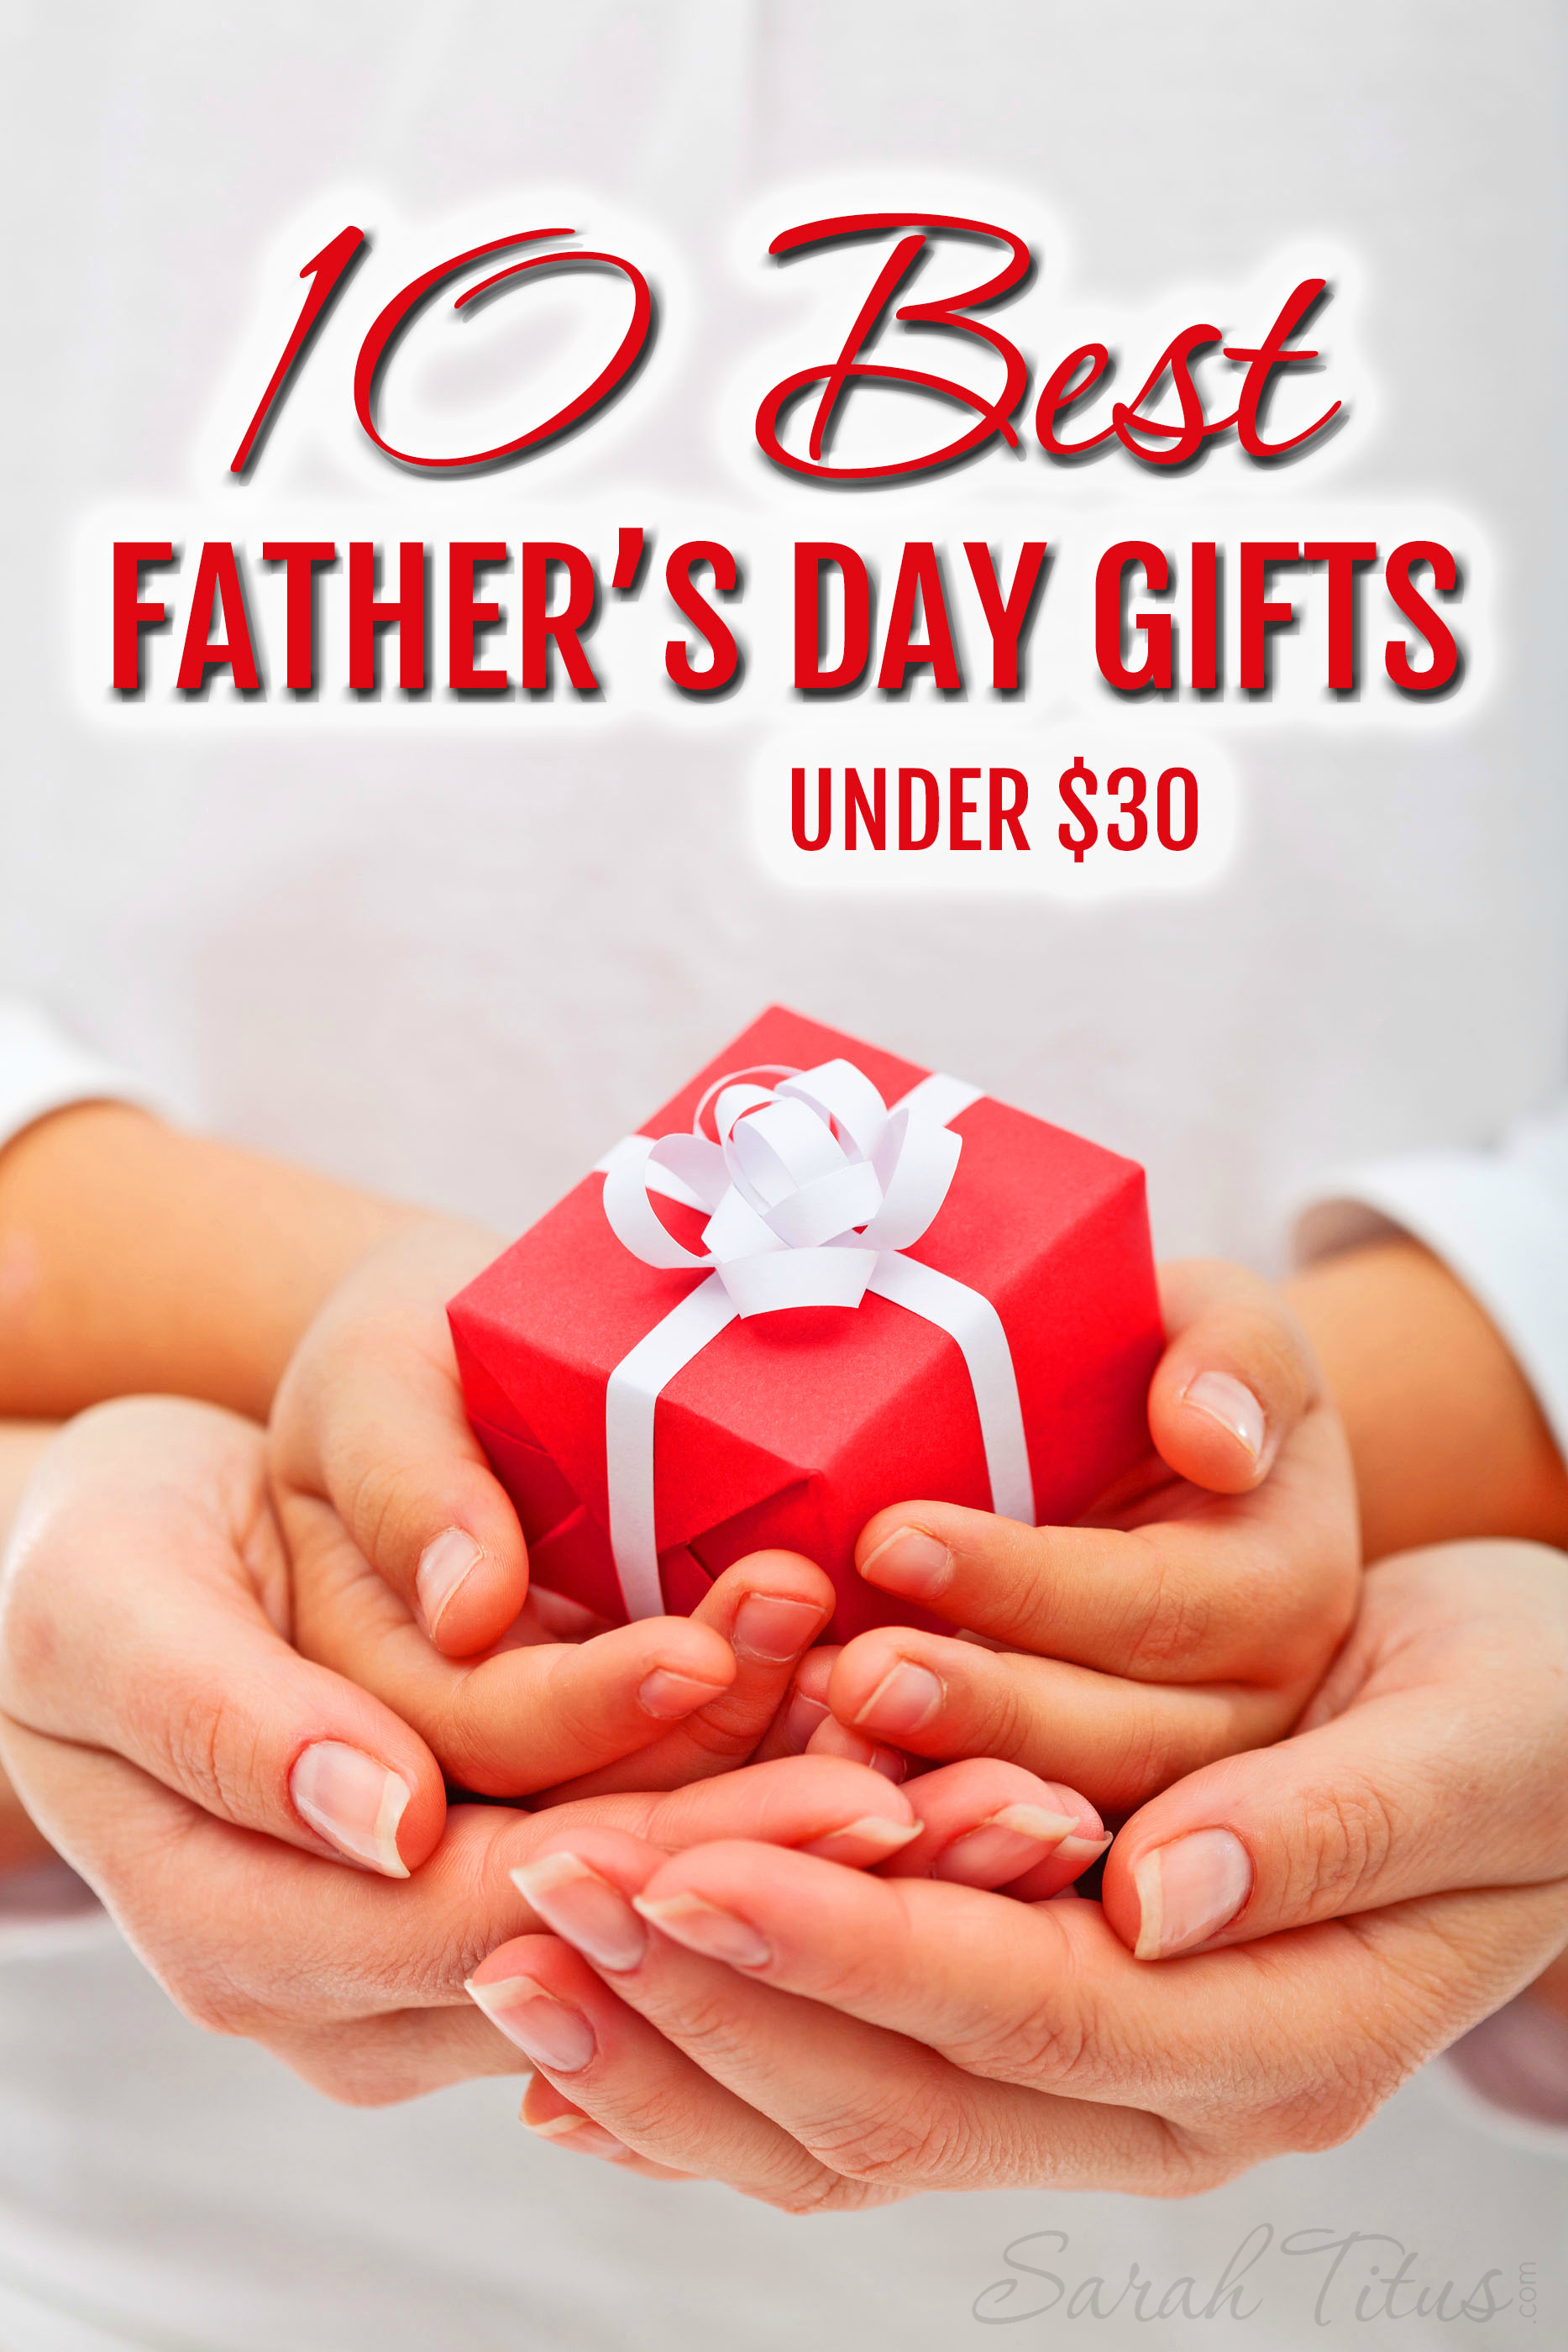 10 Best Father's Day Gifts Under $30